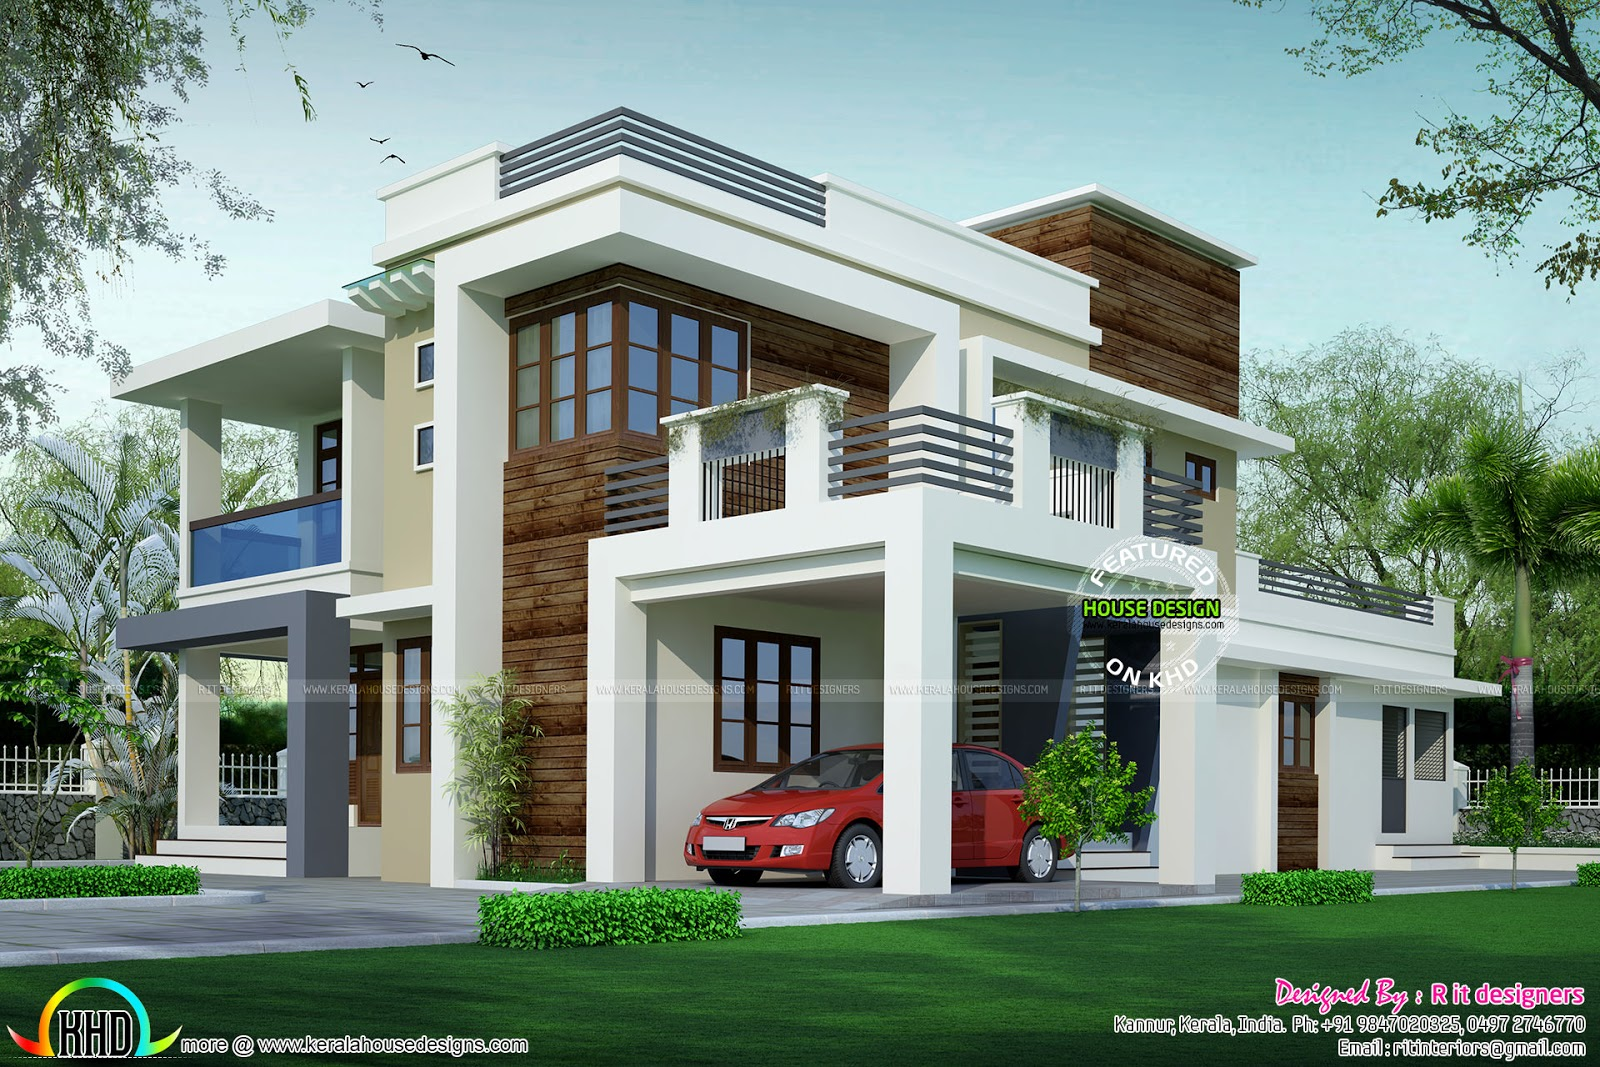 House design contemporary model kerala home design and for Kerala houses designs